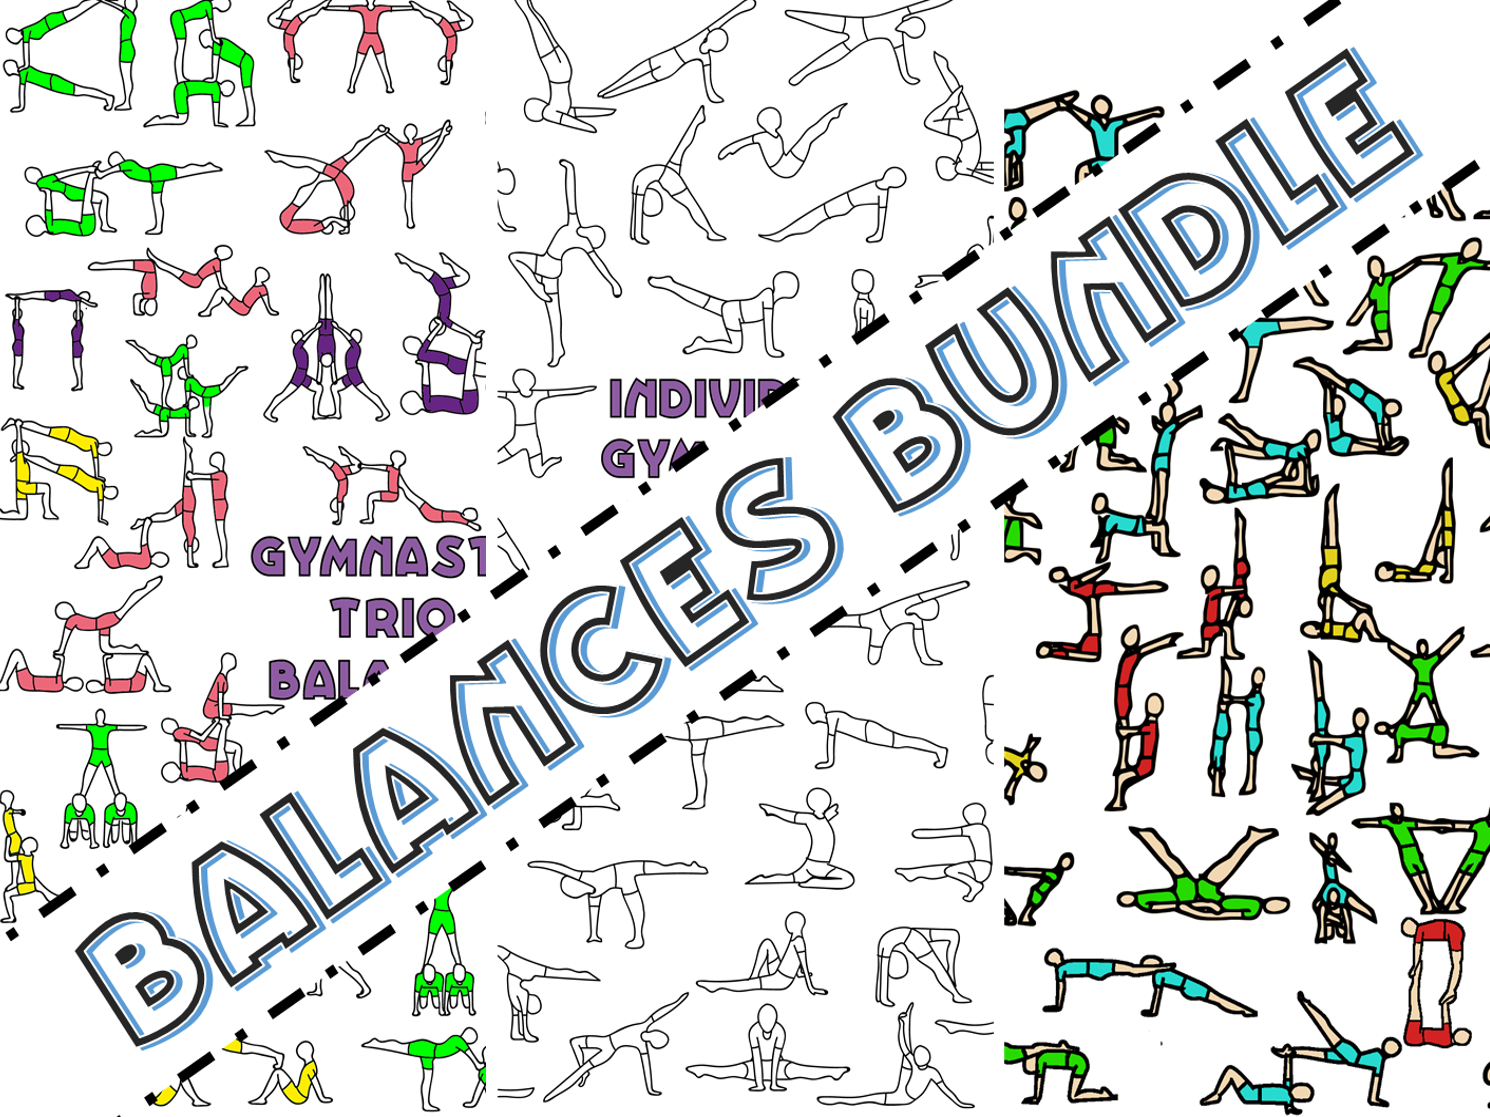 Gymnastics individual, pair and group balances resource